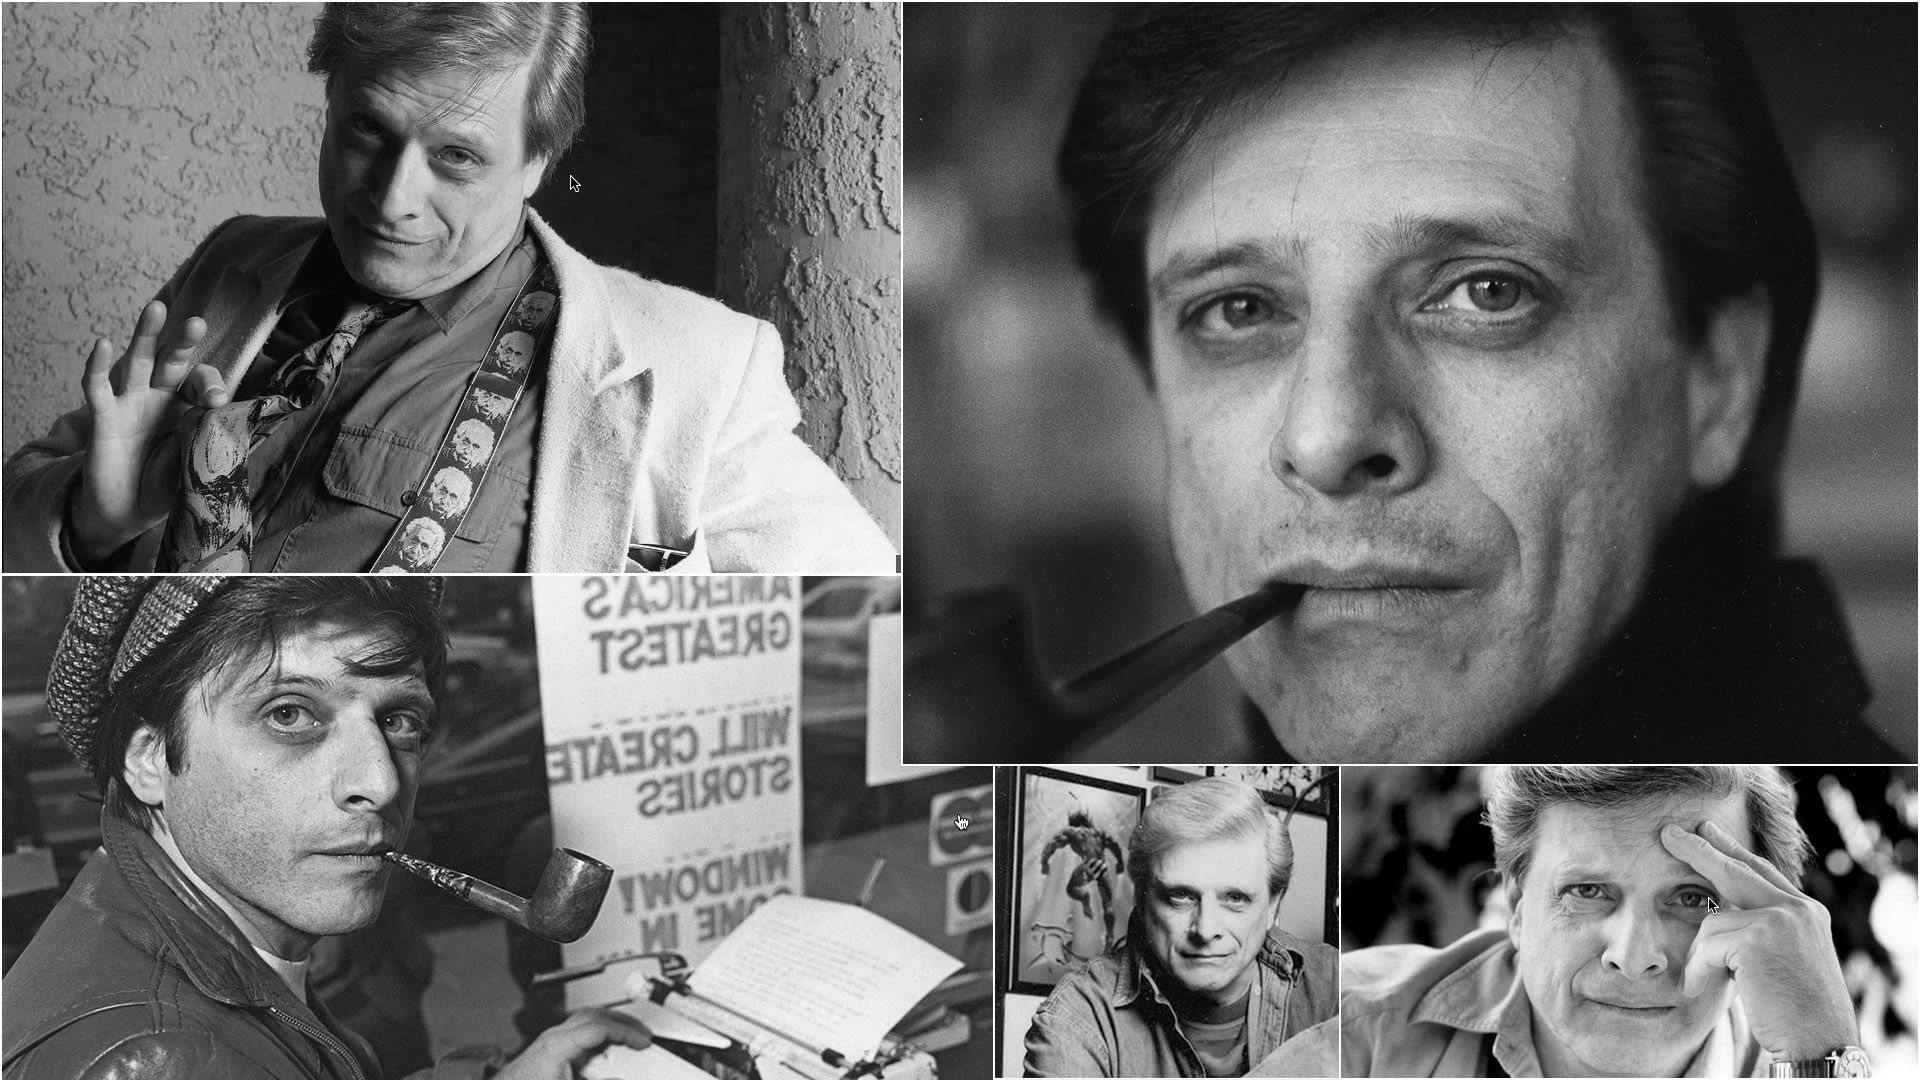 Harlan Ellison, writer, on getting paid. Harlan died on June 28, 2018. He was 84.